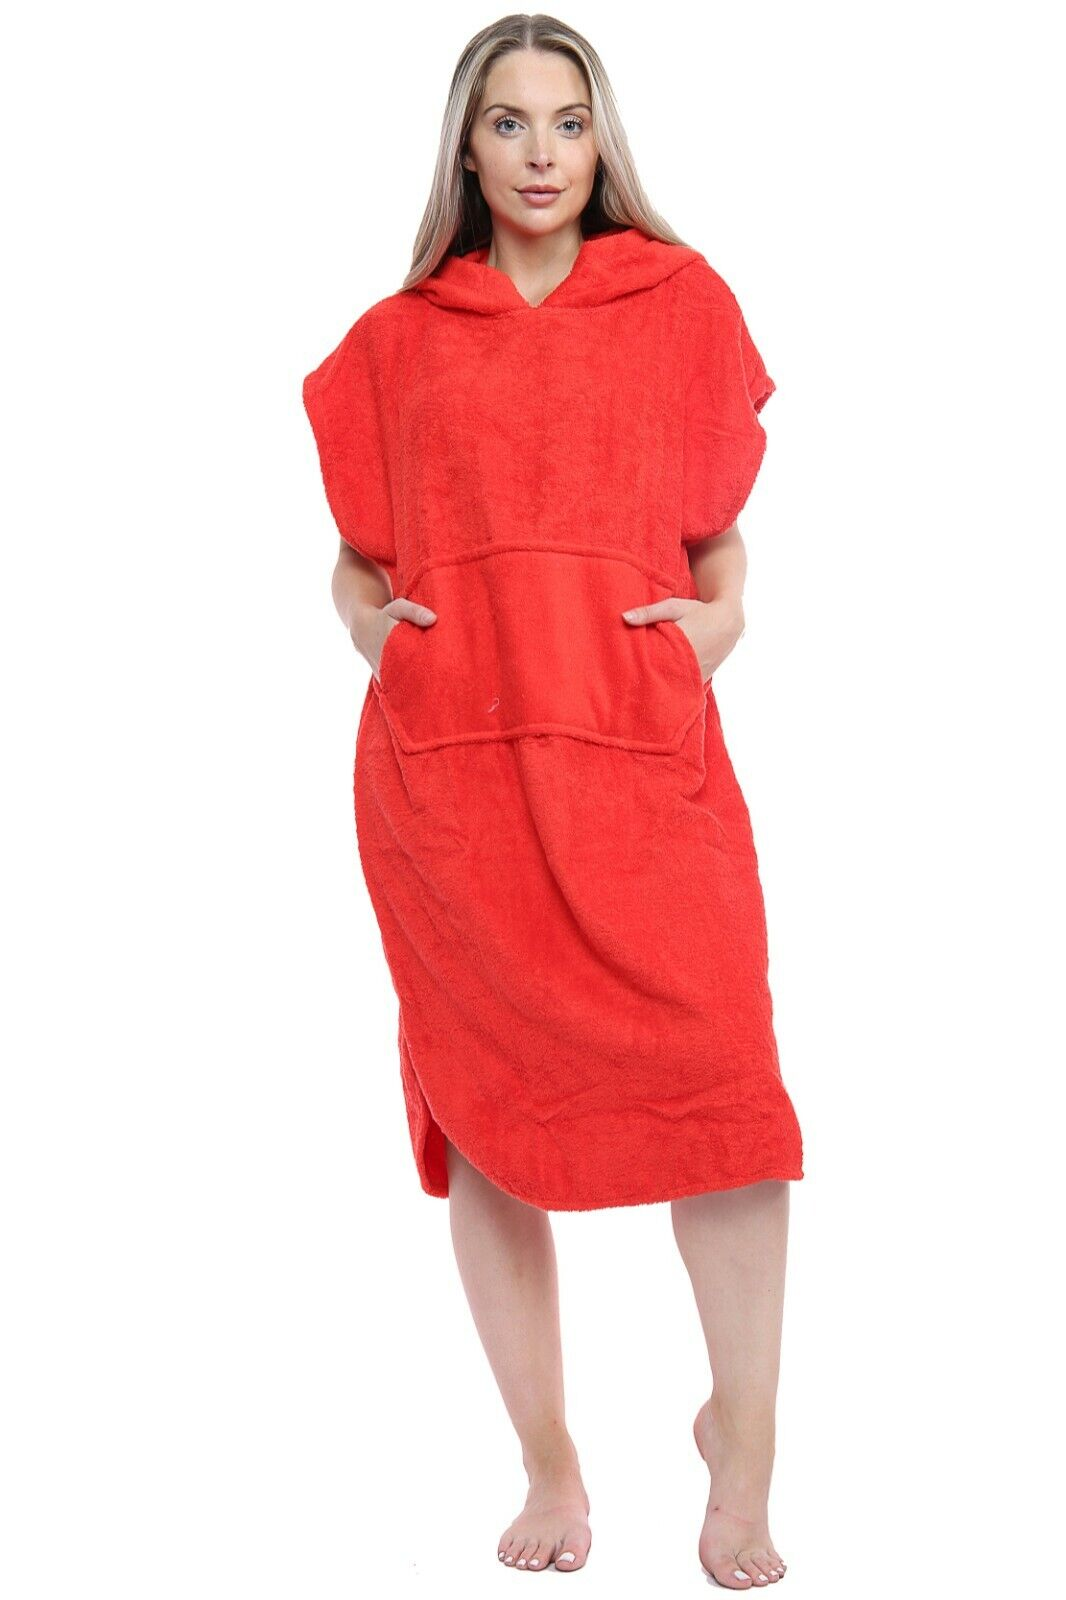 Unisex Changing Robe 100% Cotton Hooded With Pocket Beach Poncho Swimming Surf